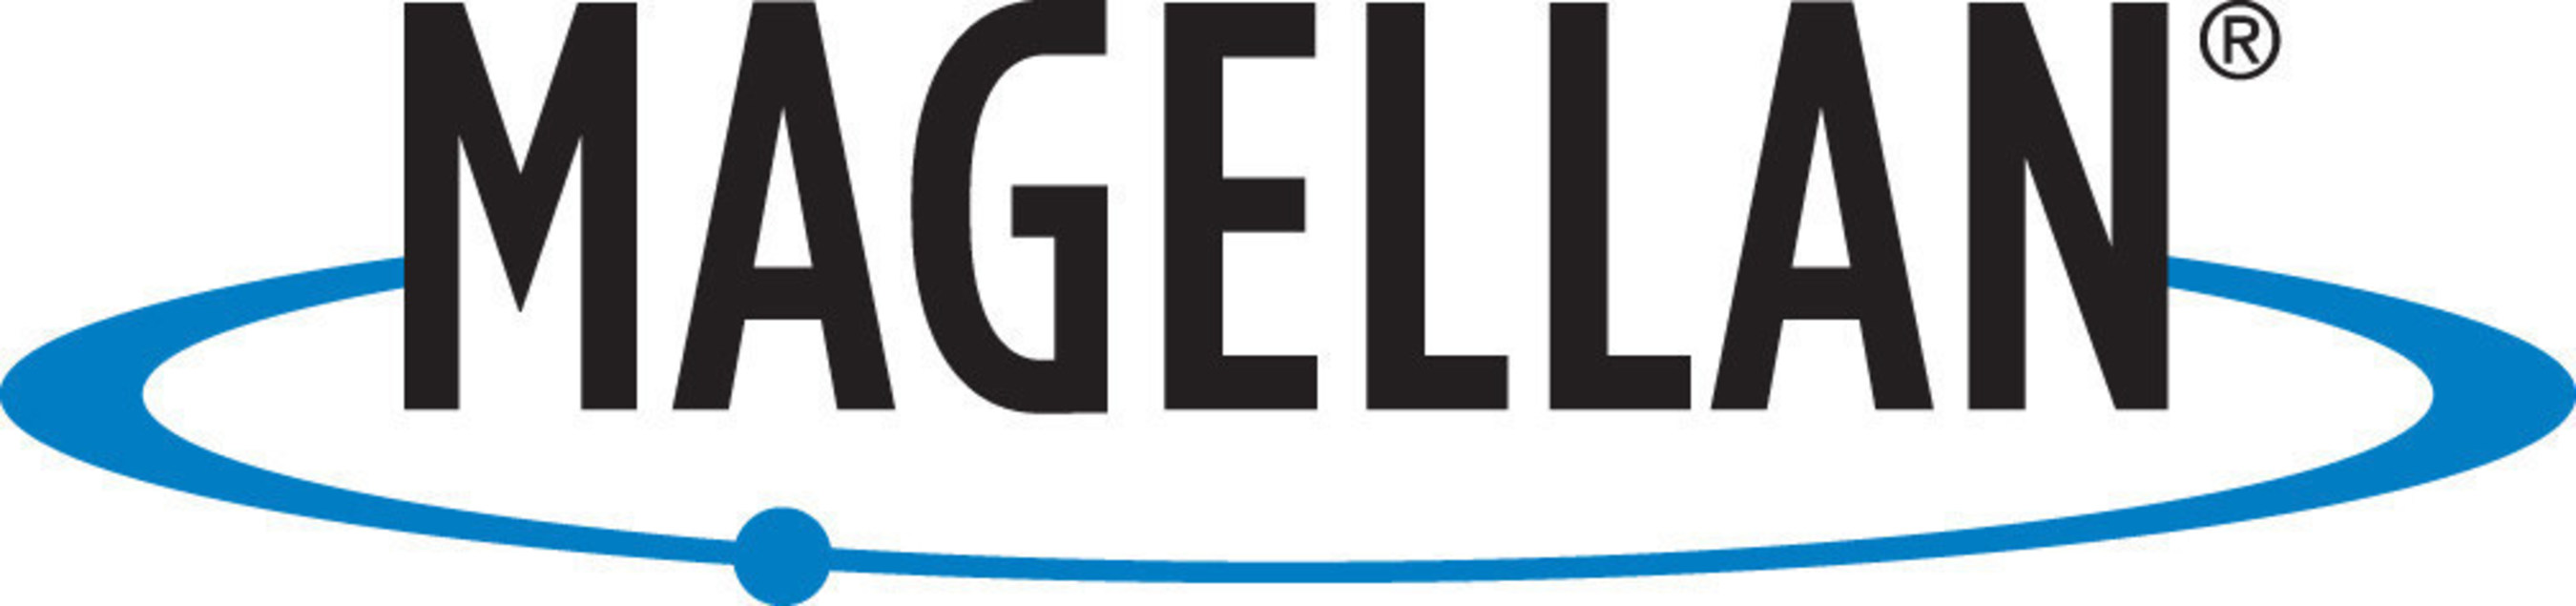 Magellan, the industry leader for innovative GPS navigation devices and content services